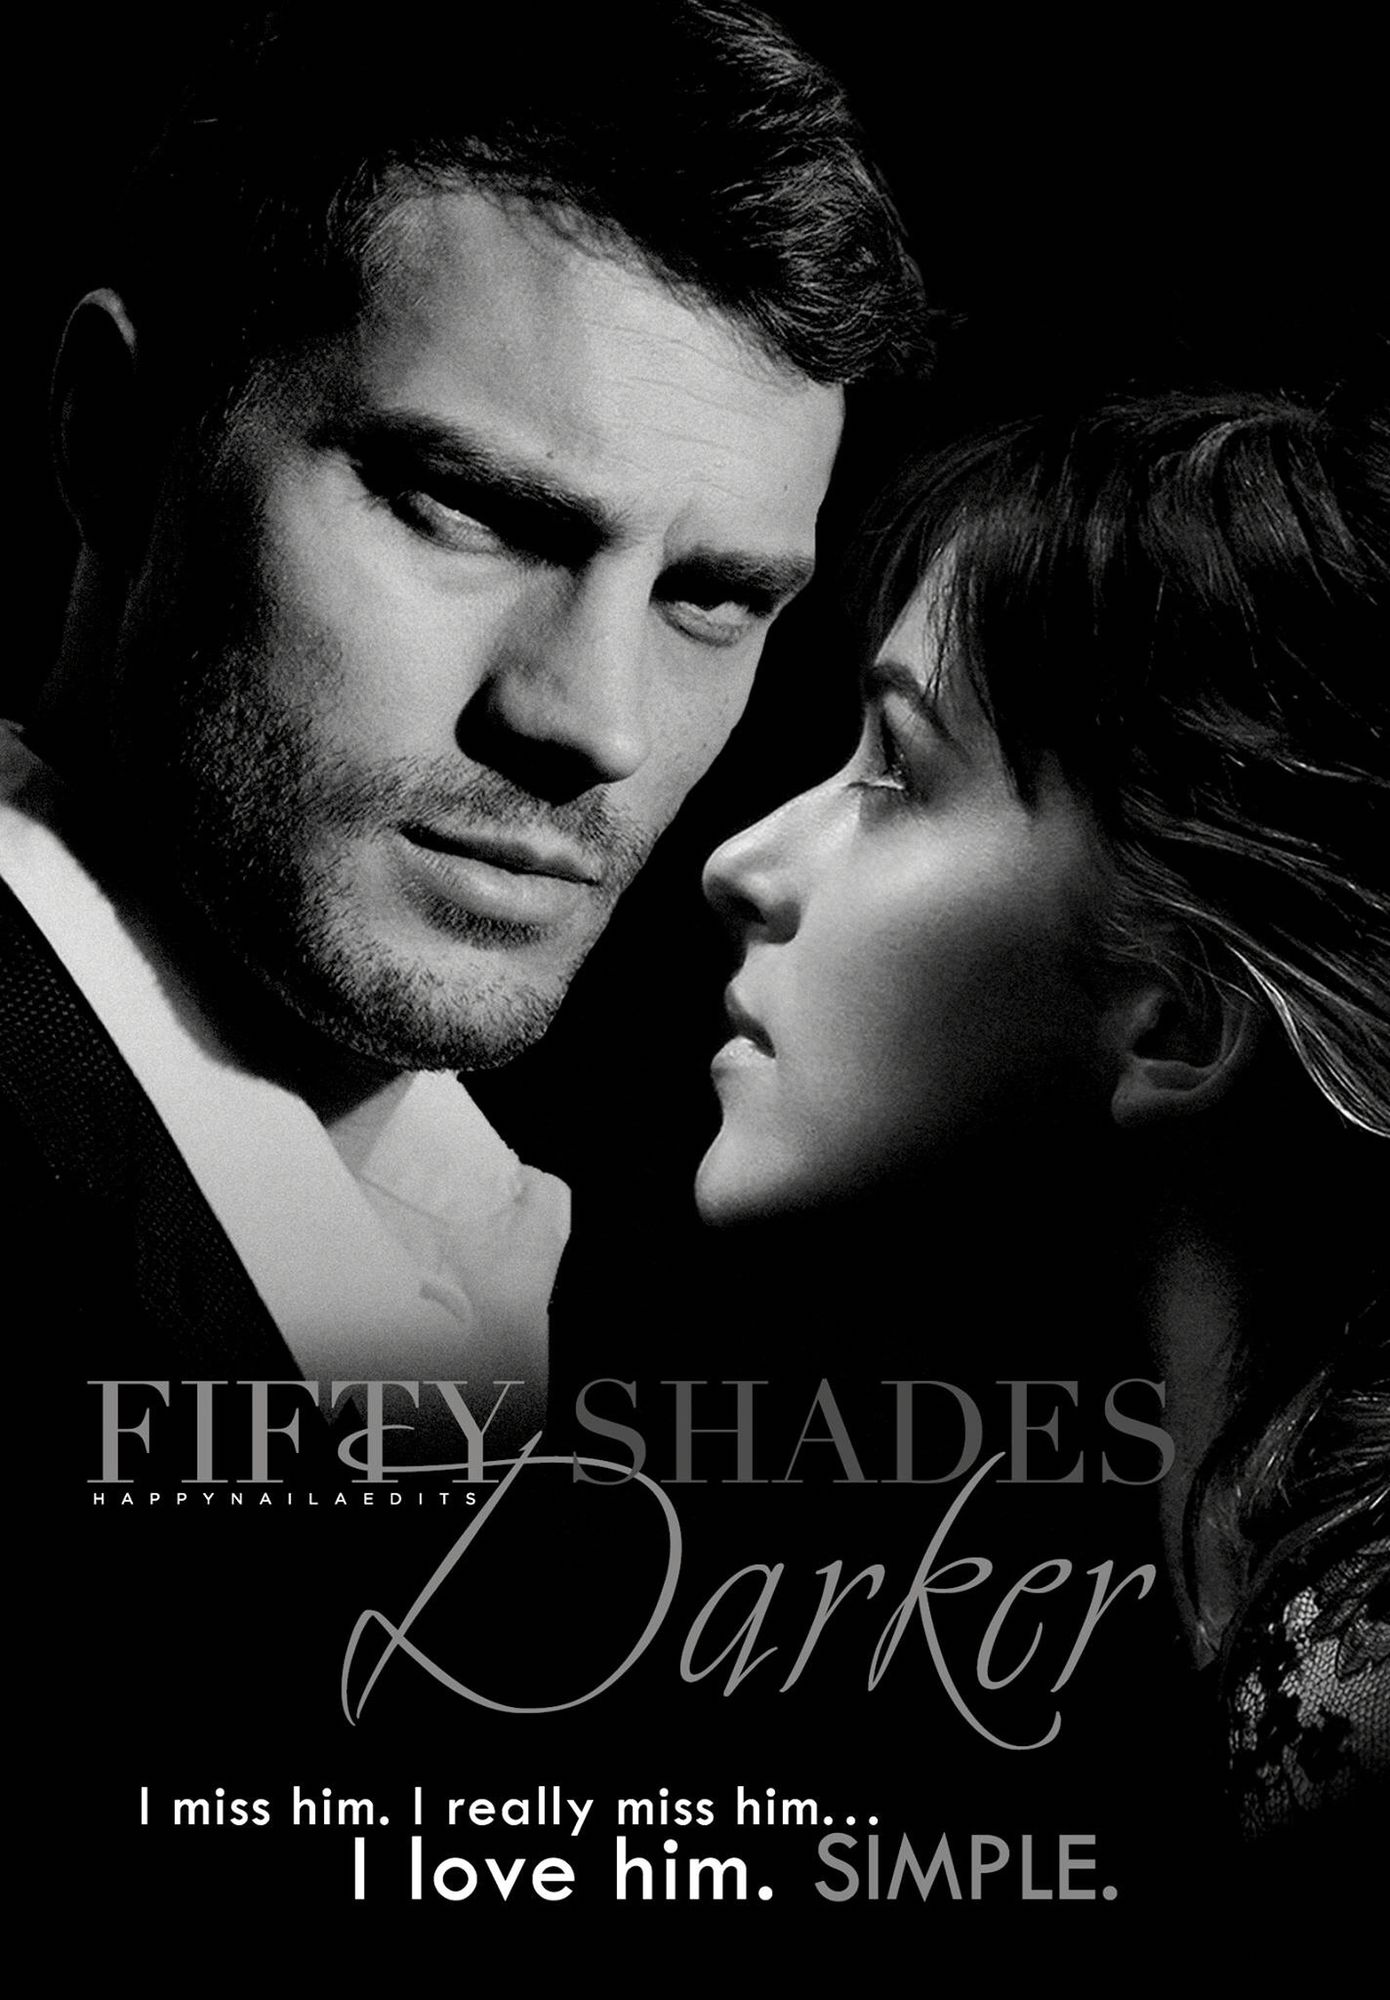 Fifty Shades The Movie Assistir Filmes Gratis Online Cinquenta